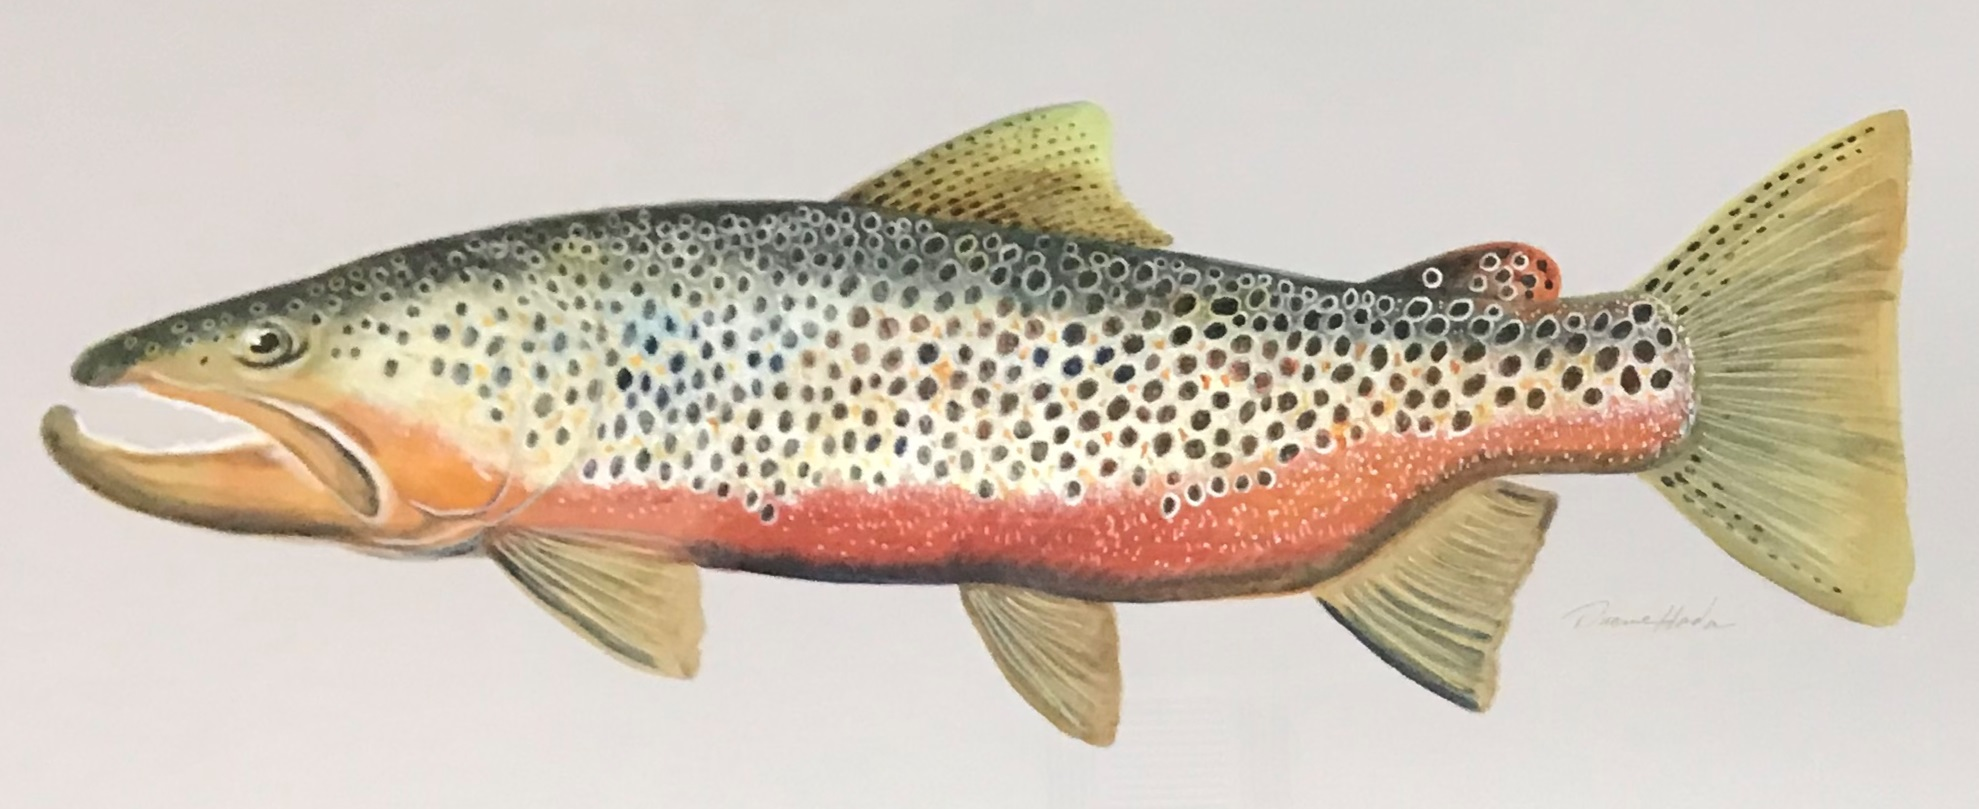 Spawning Brown Trout - Watercolor13 x 30$1250.00